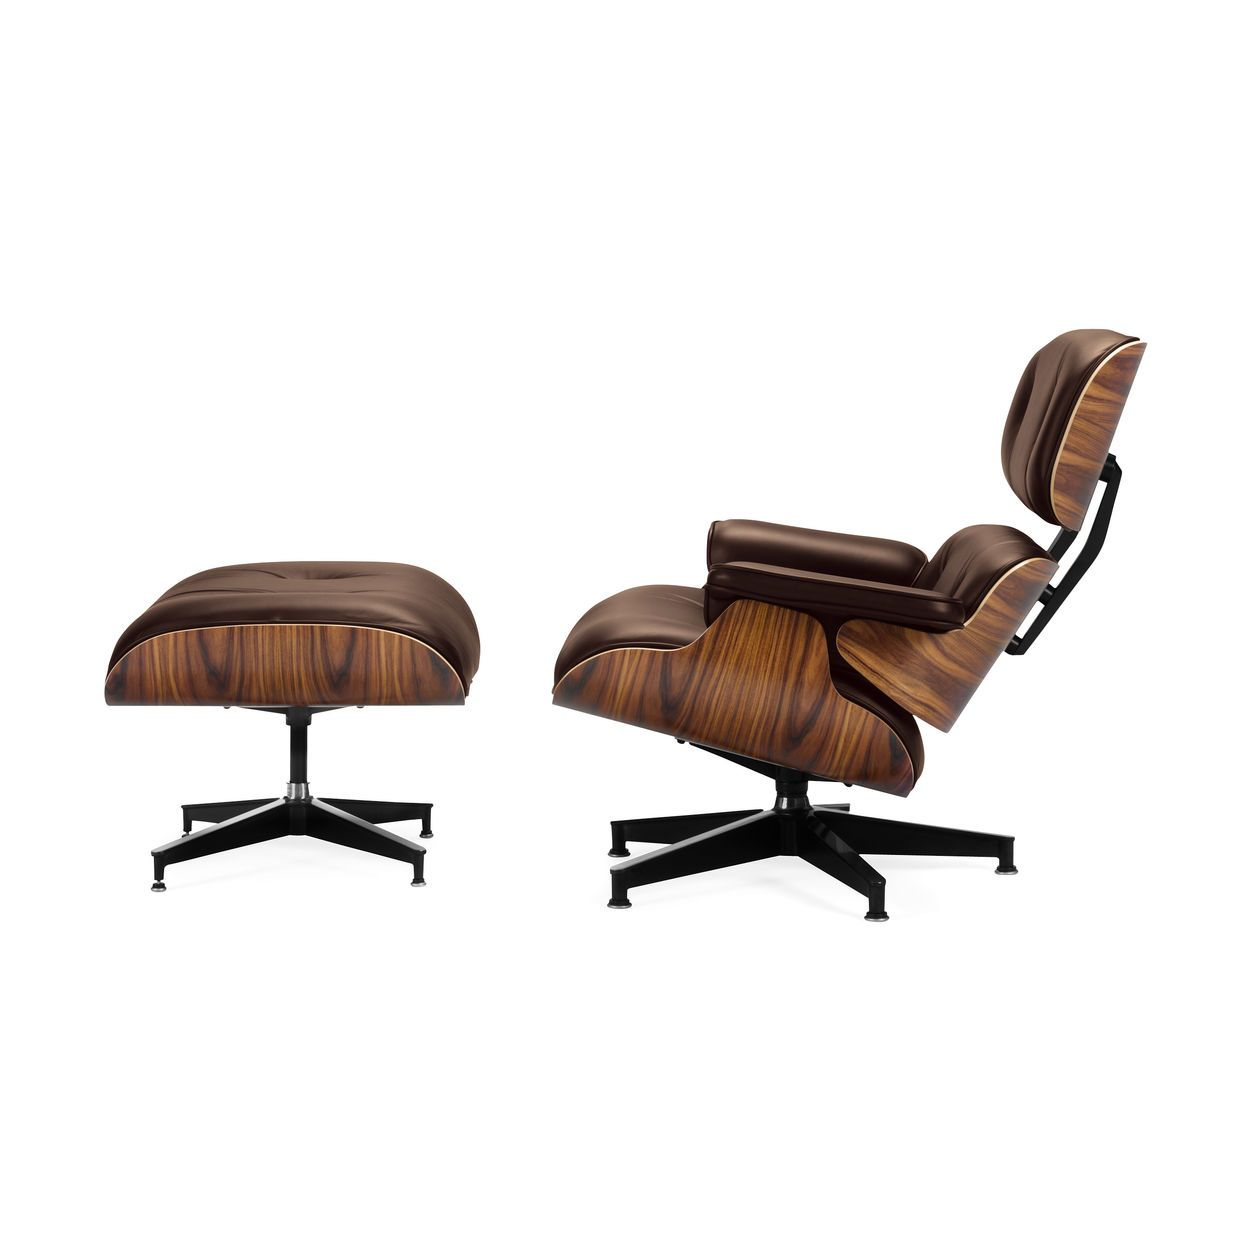 Eames Lounge Chair And Ottoman Eames Lounge Chair Eames Lounge Lounge Chair